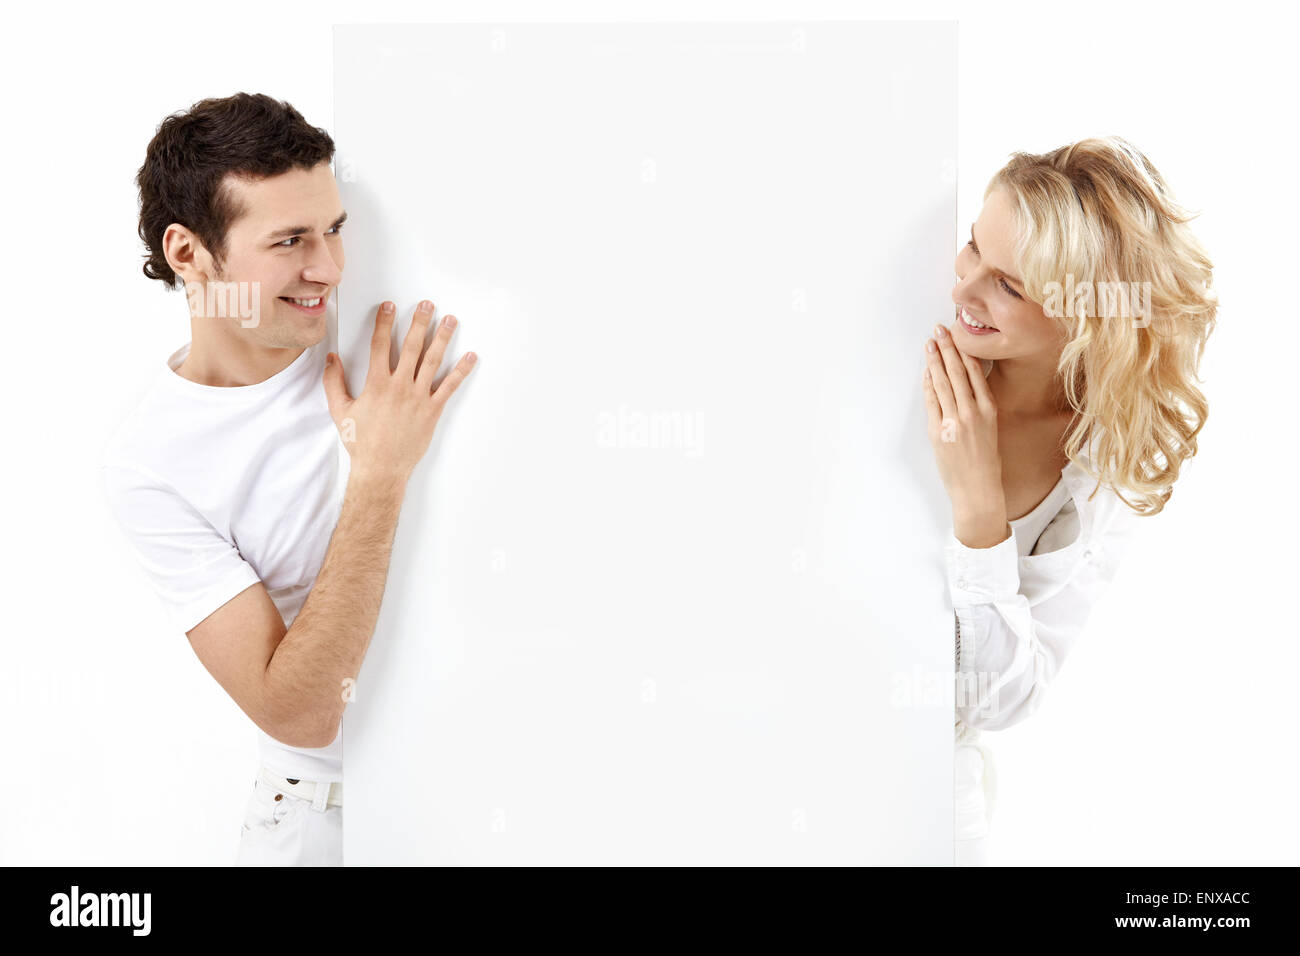 The guy and the girl exchange glances through an empty banner Stock Photo